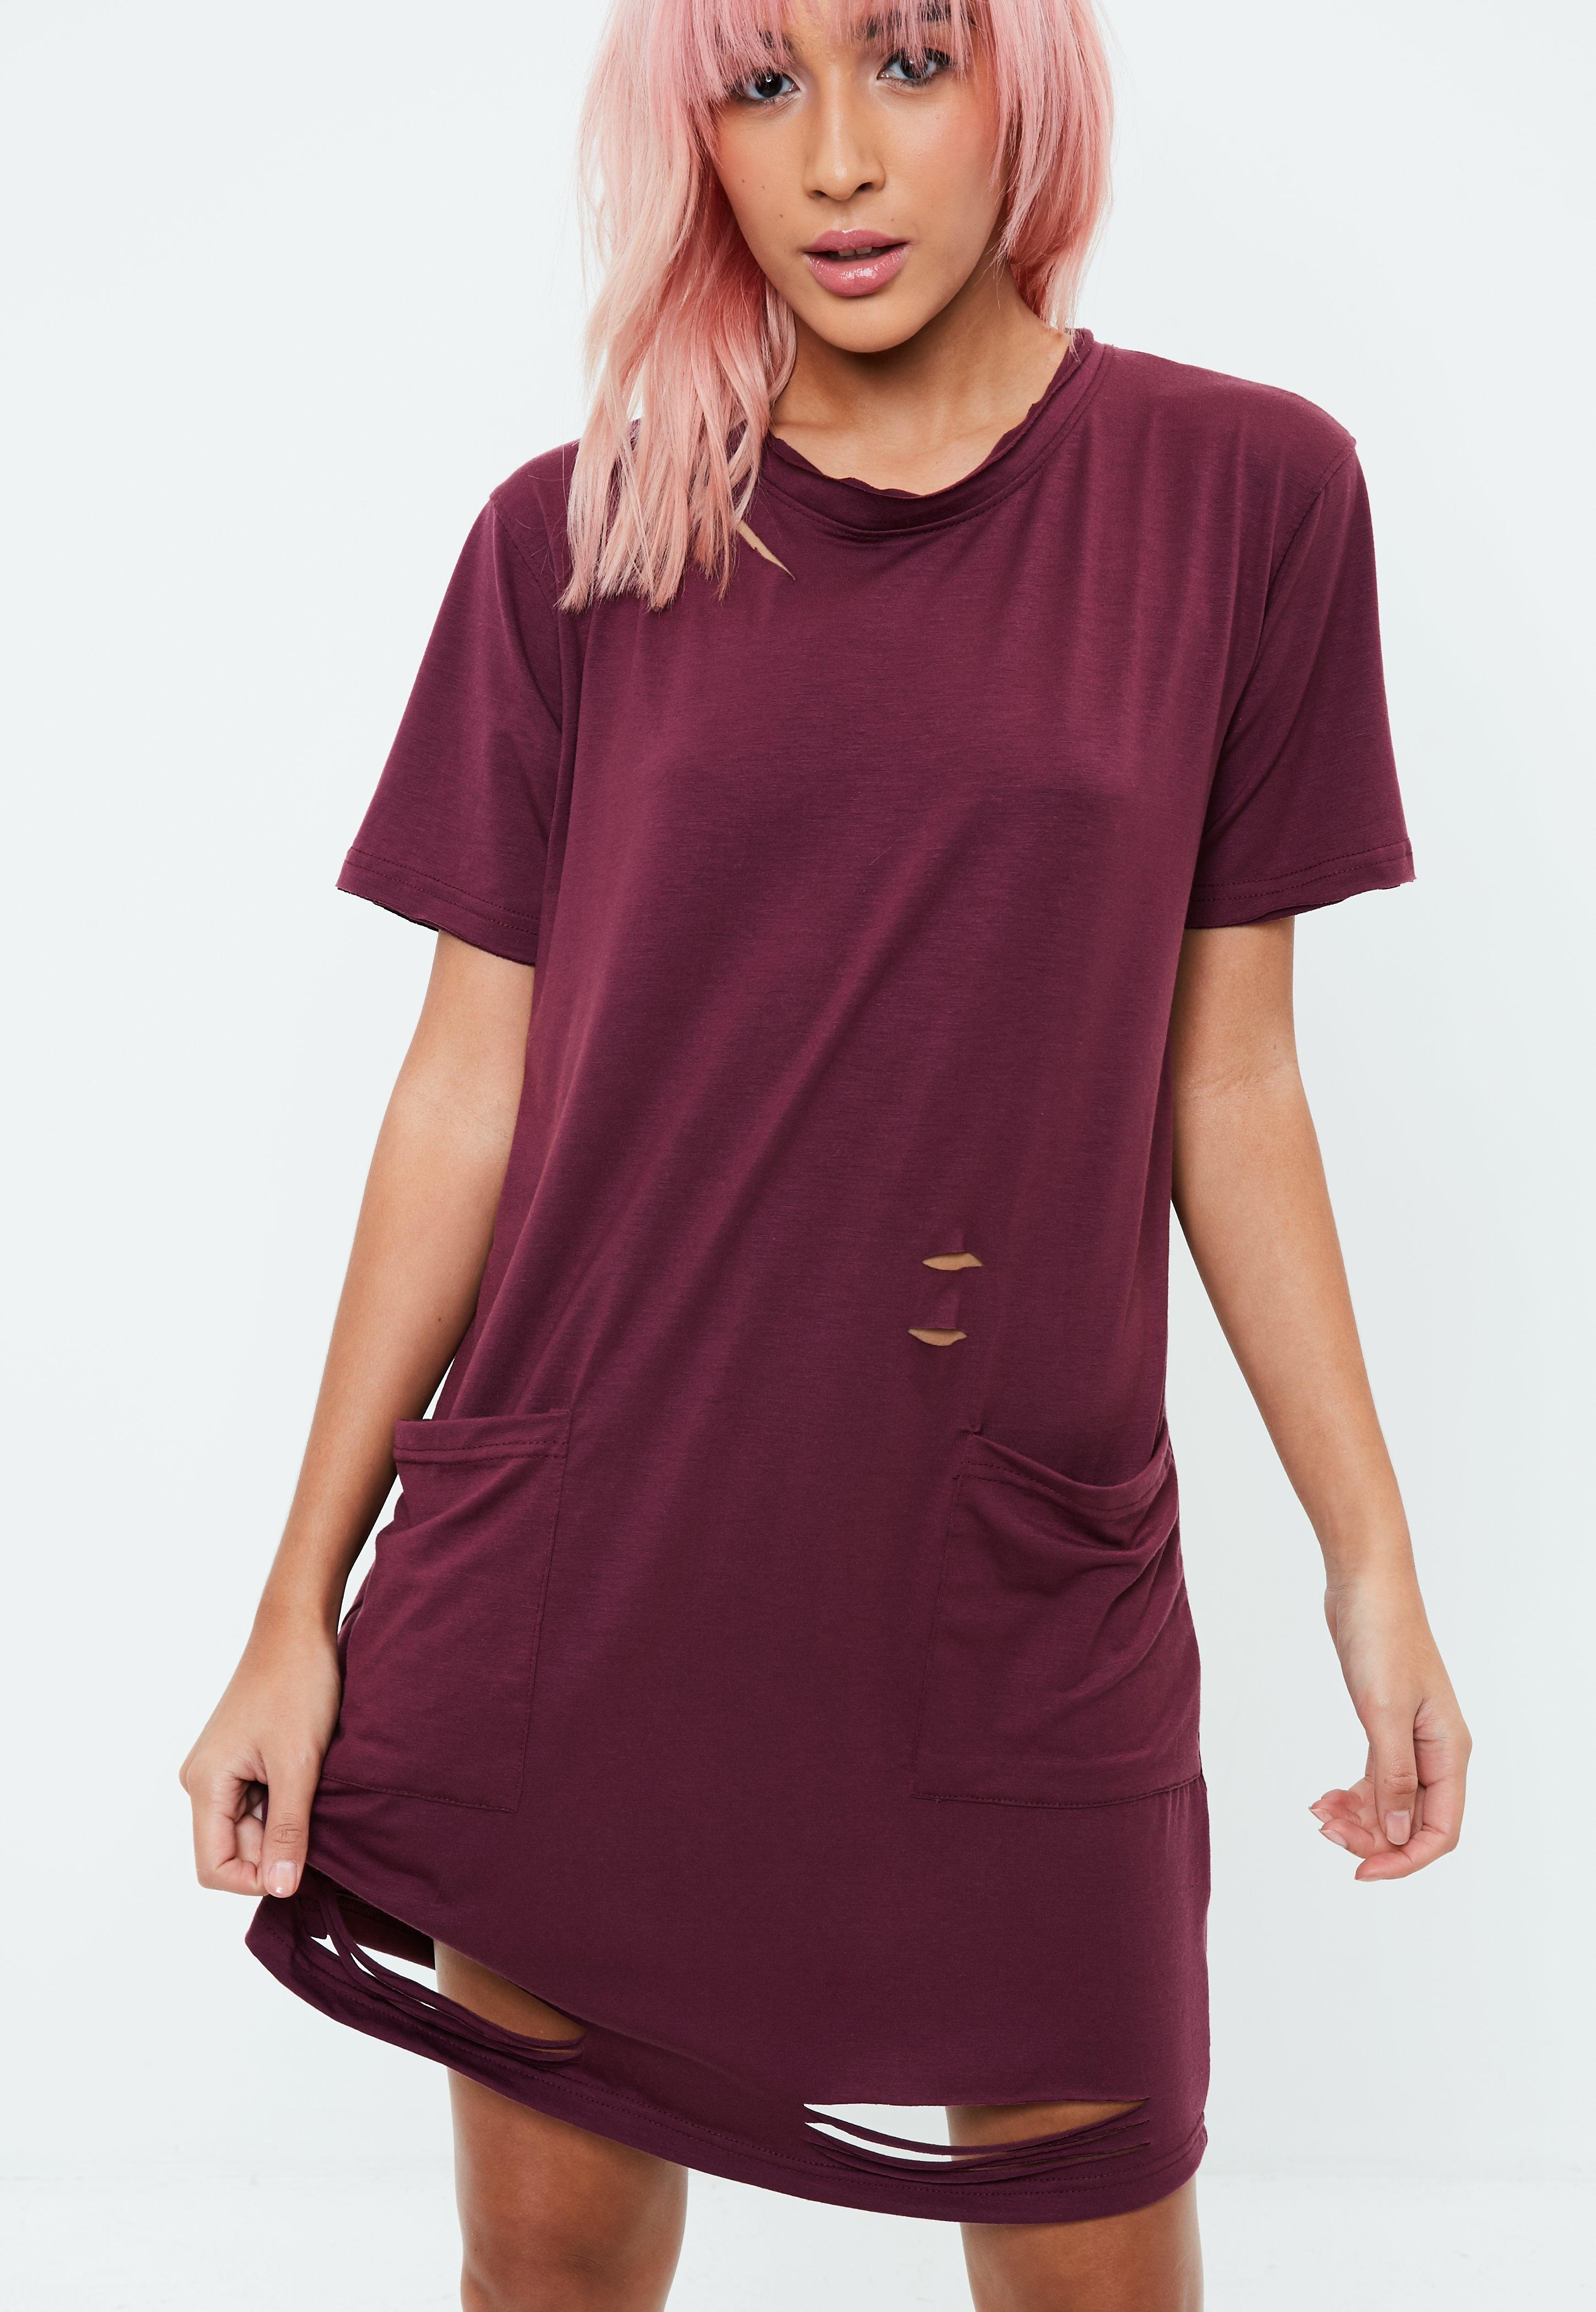 f54cb1be1140 Lyst - Missguided Burgundy Distressed Oversized T-shirt Dress in Purple